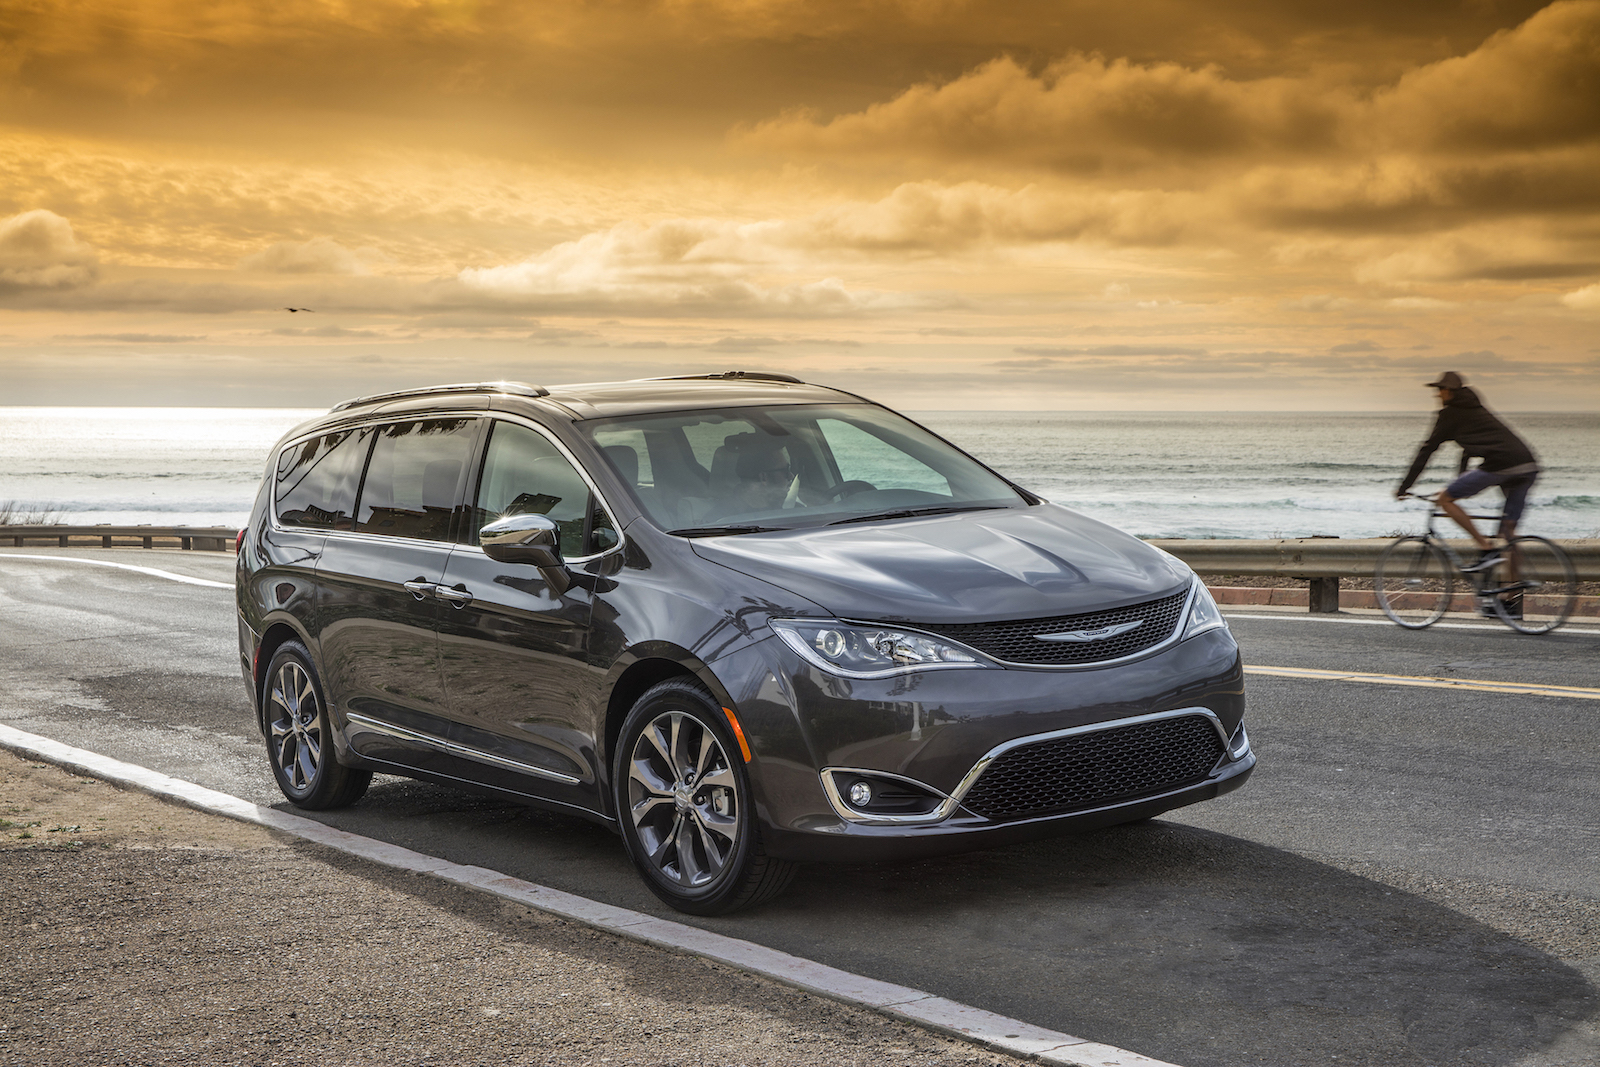 Chrysler Pacifica Hybrid: lifetime carbon emissions 24 percent lower vs standard minivan